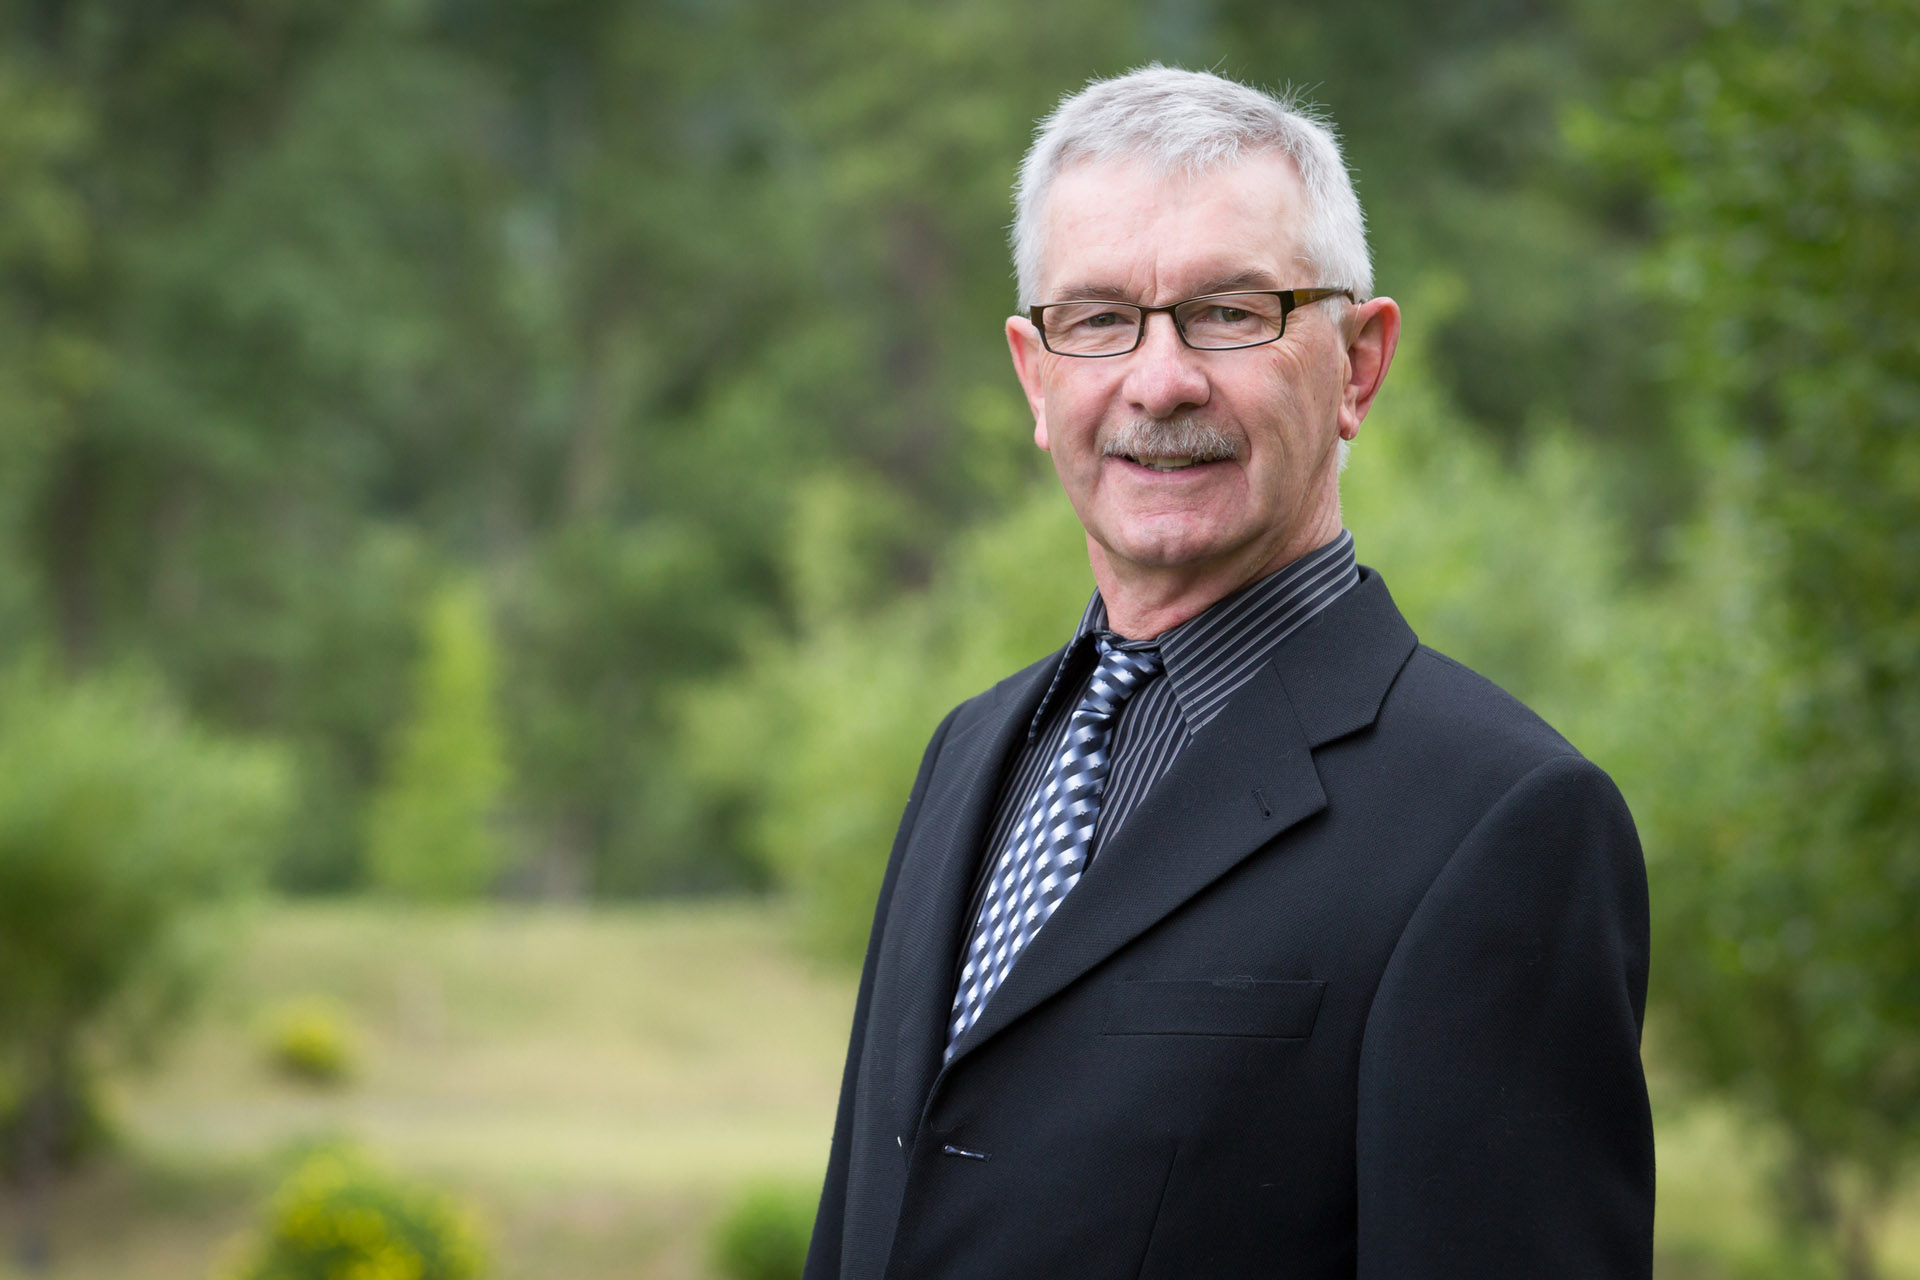 Sparwood Councillor Brad Bowen running for second term